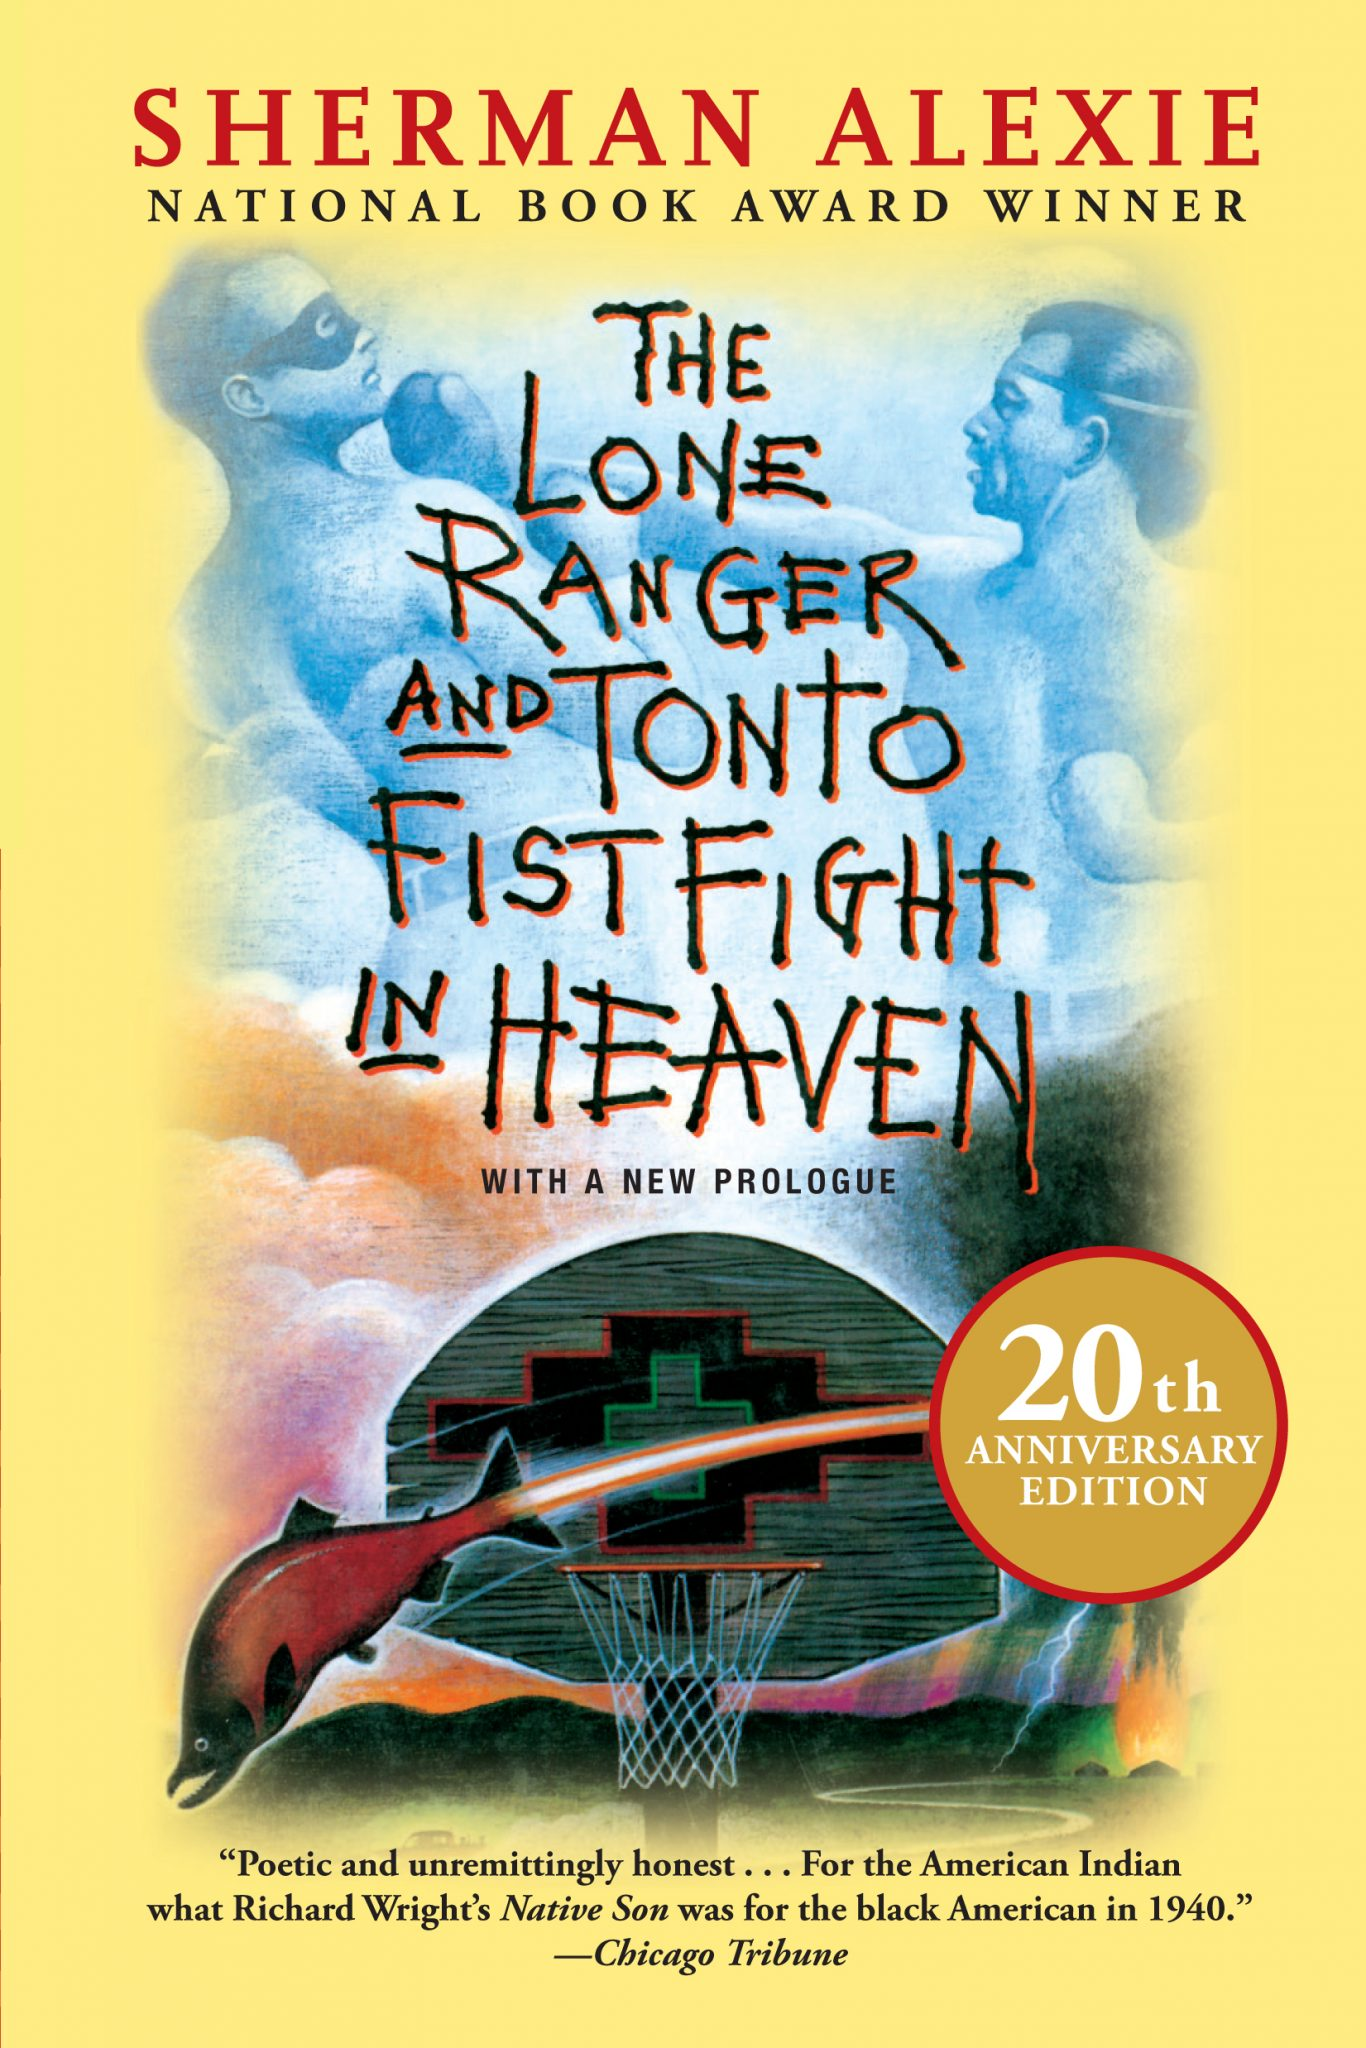 the lone ranger and tonto fistfight to heaven vs smoke signals Welcome to the litcharts study guide on sherman alexie's the lone ranger and tonto fistfight in heaven created by the original team behind sparknotes, litcharts are the world's best literature guides lone ranger and tonto fistfight in heaven: introduction a concise biography of sherman alexie plus.